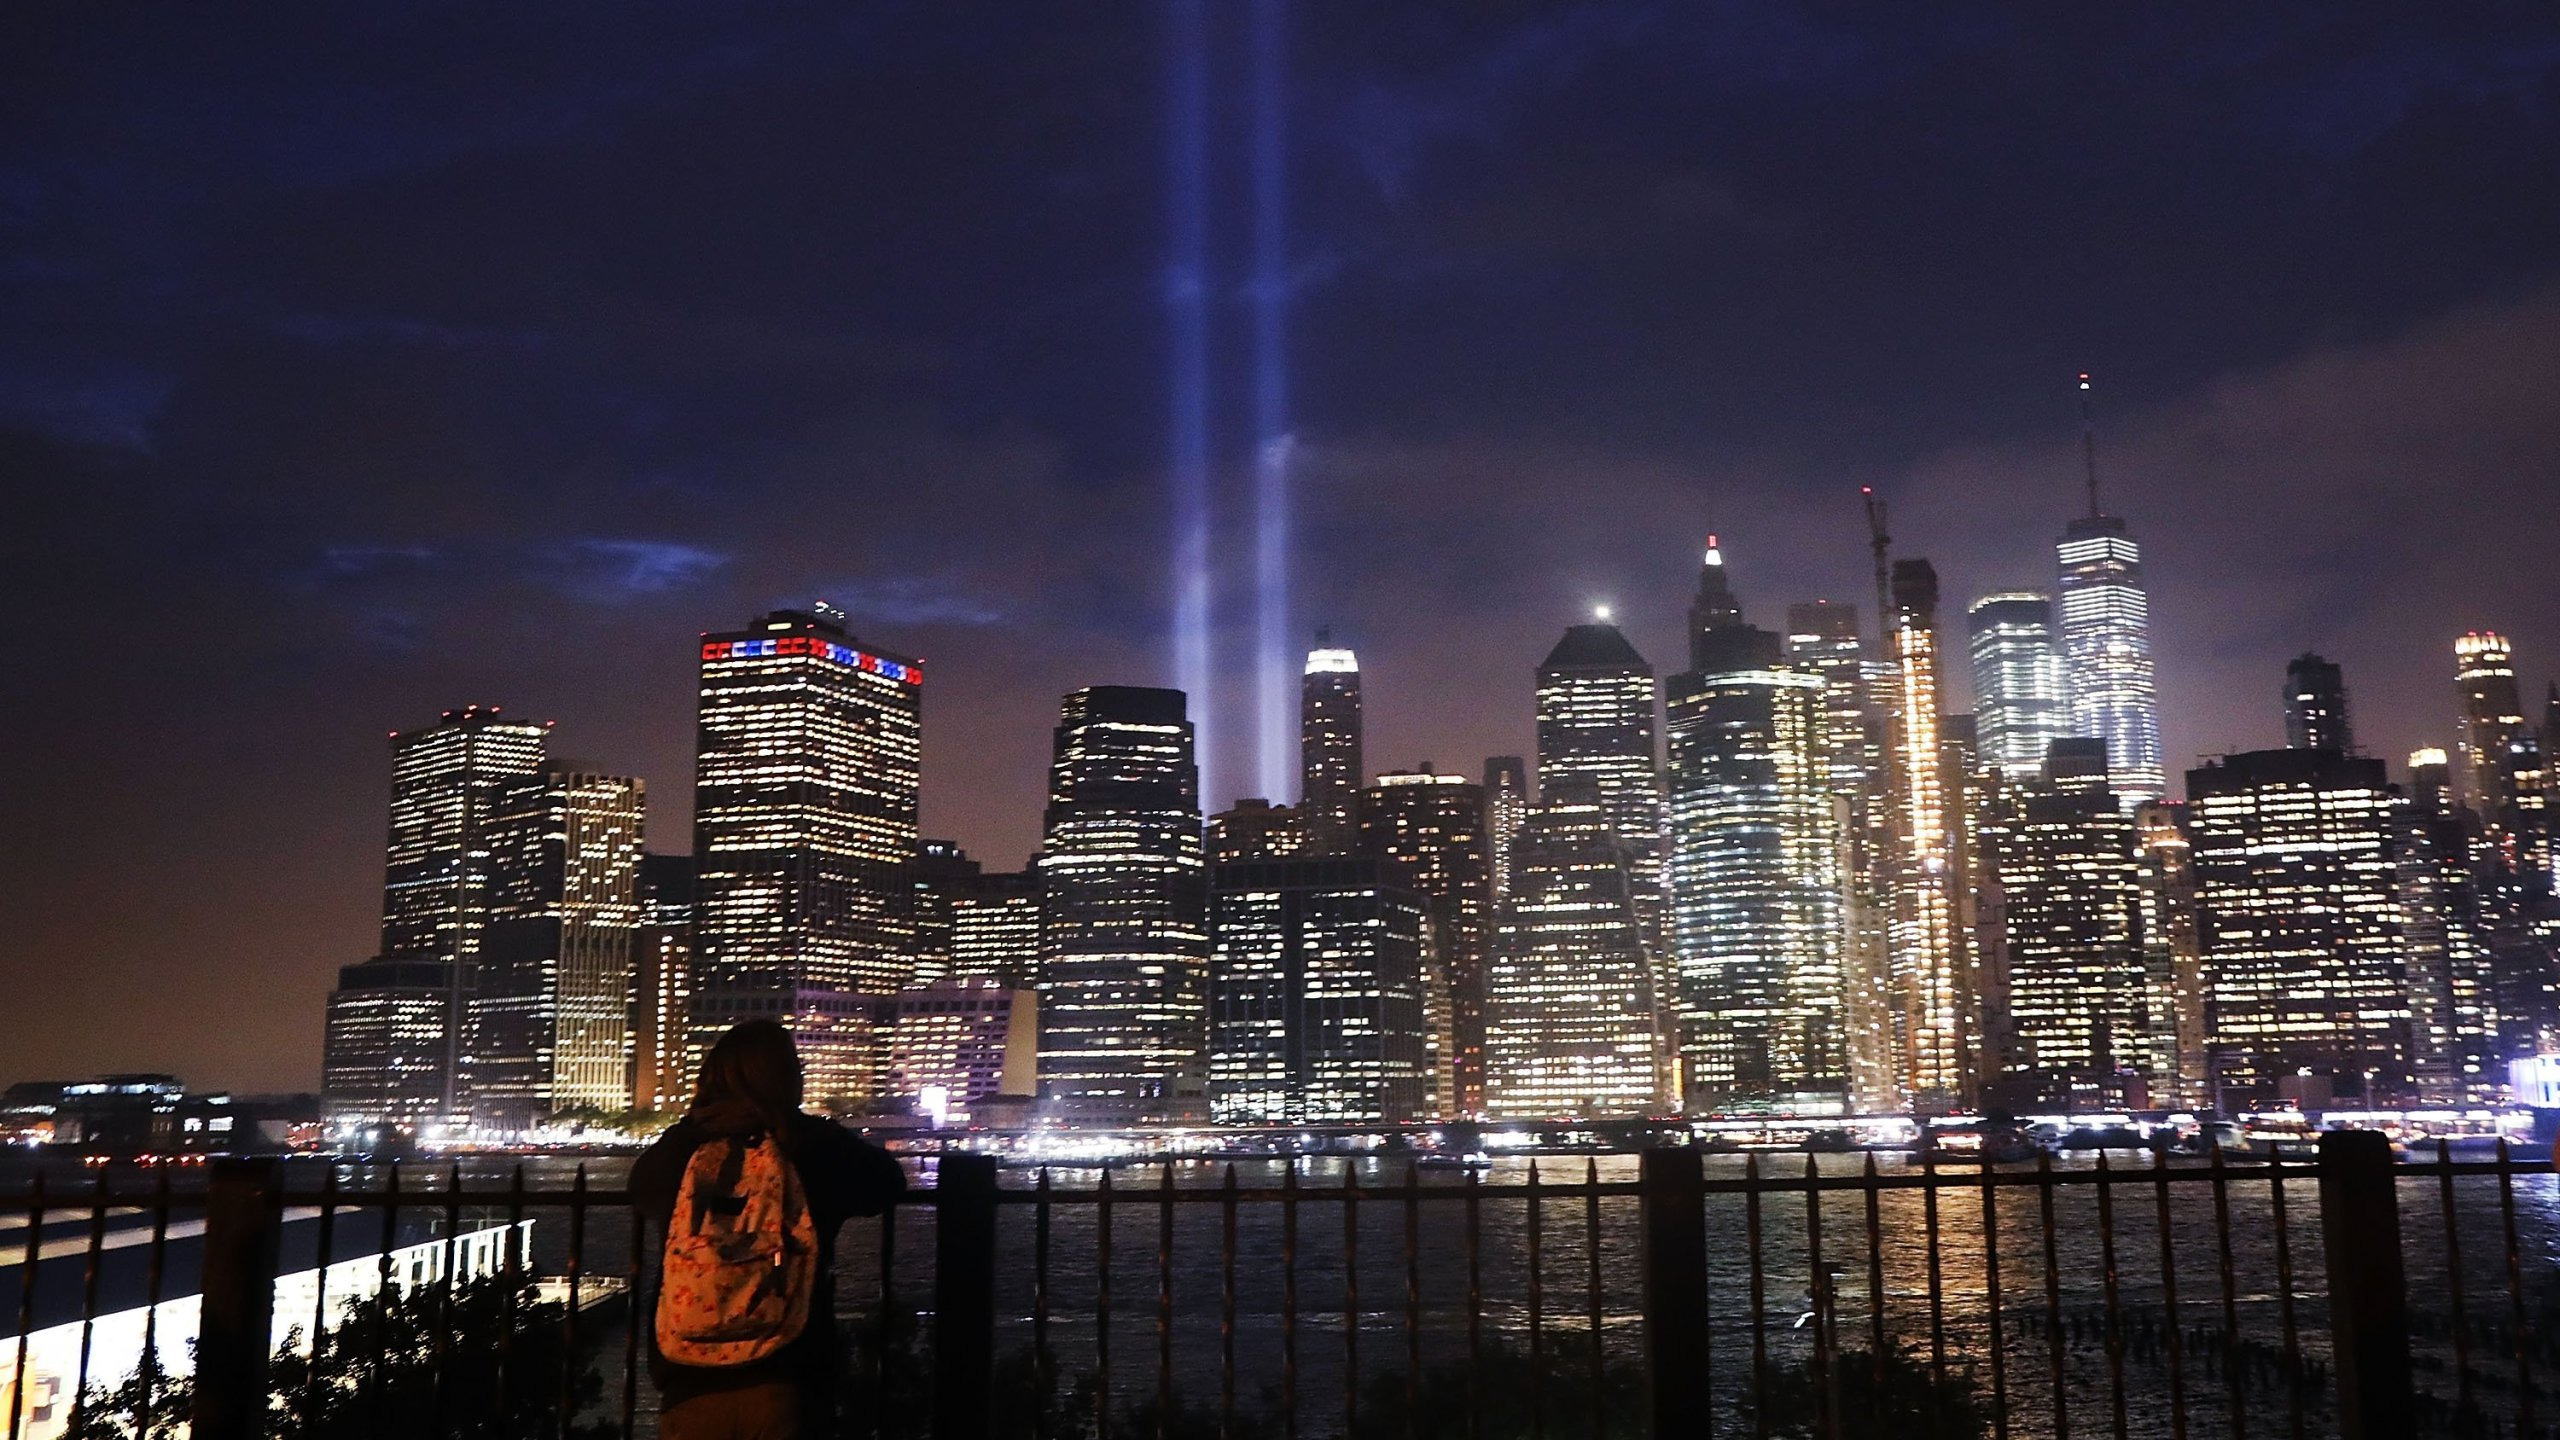 Public schools across New York will now offer a brief moment of silence on the anniversary of 9/11.